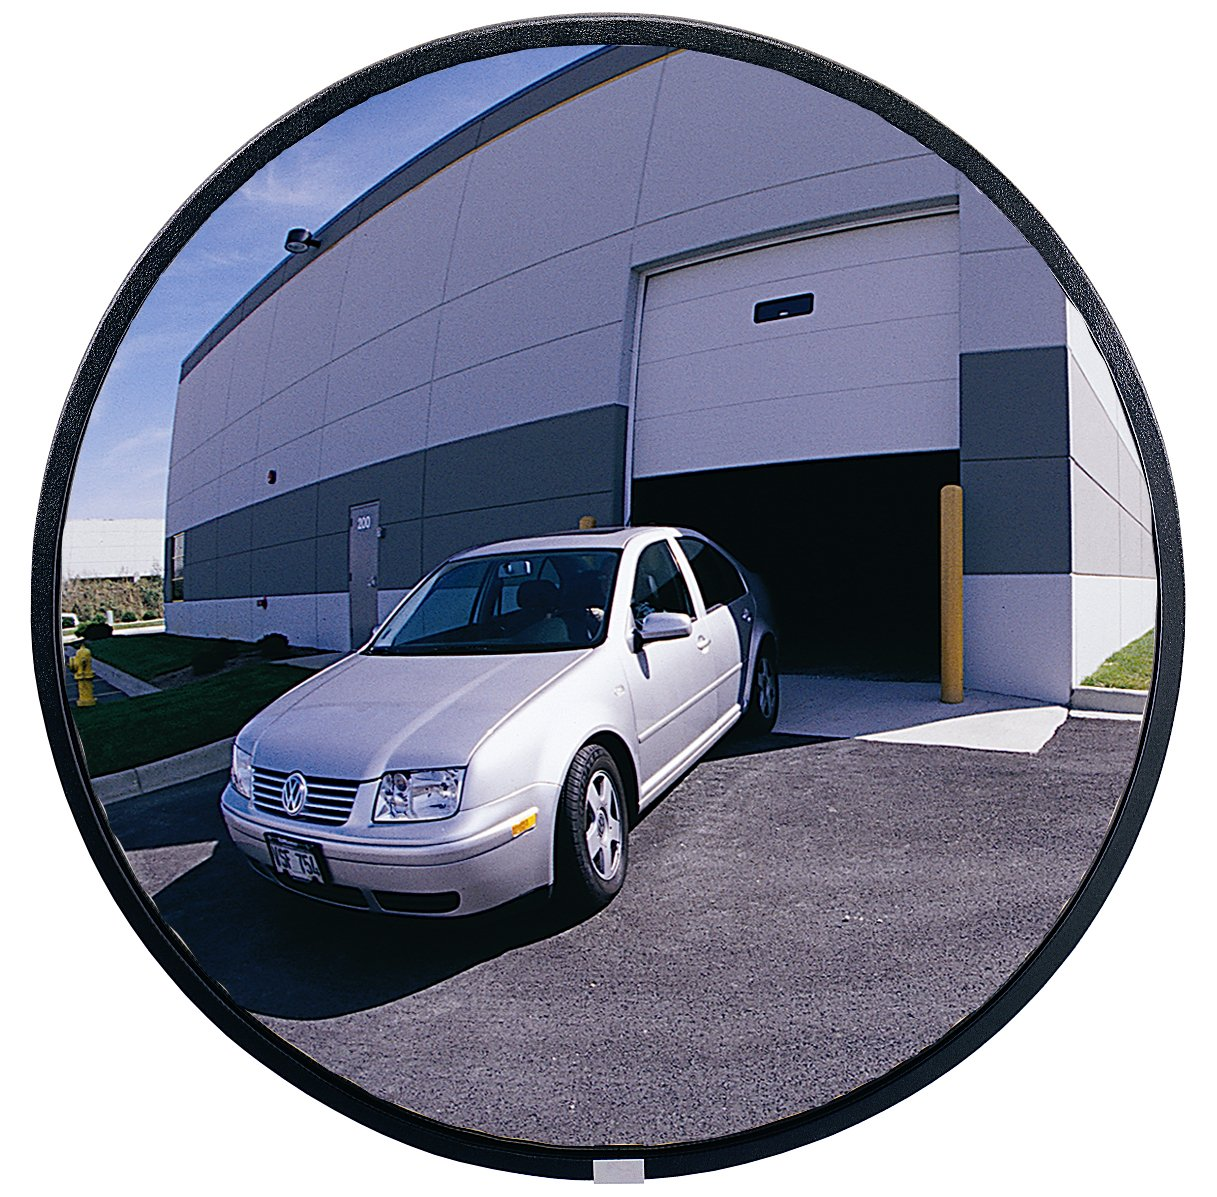 See All SNO36 Convex Mirror, Shatter Resistant Glass Face, Outdoor Use, 36'' Diameter